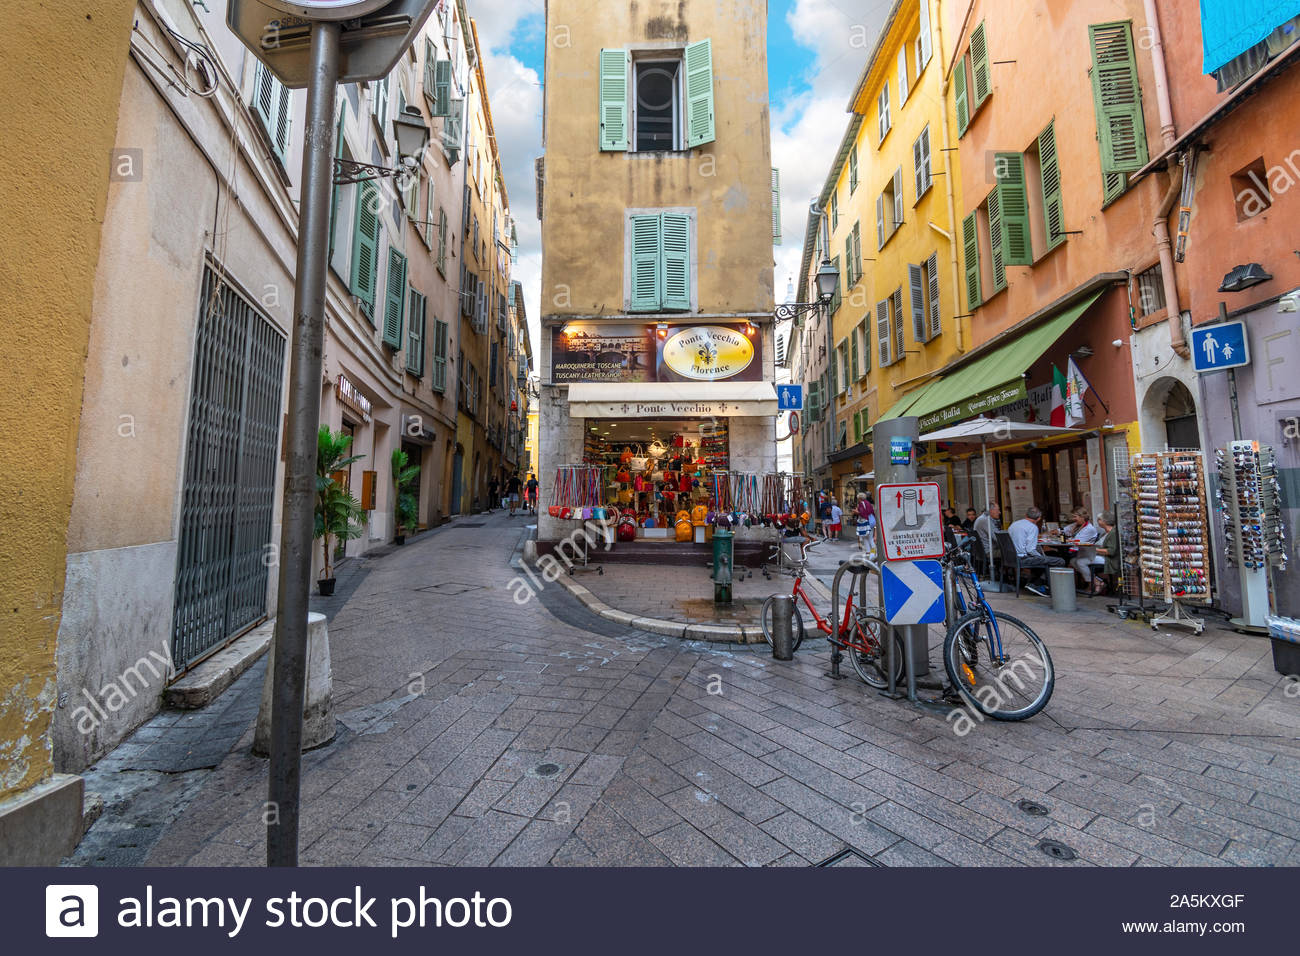 One of the many sharp corners and turns in the twisty, winding Old Town of Vieux Nice, France, on the French Riviera. Stock Photo